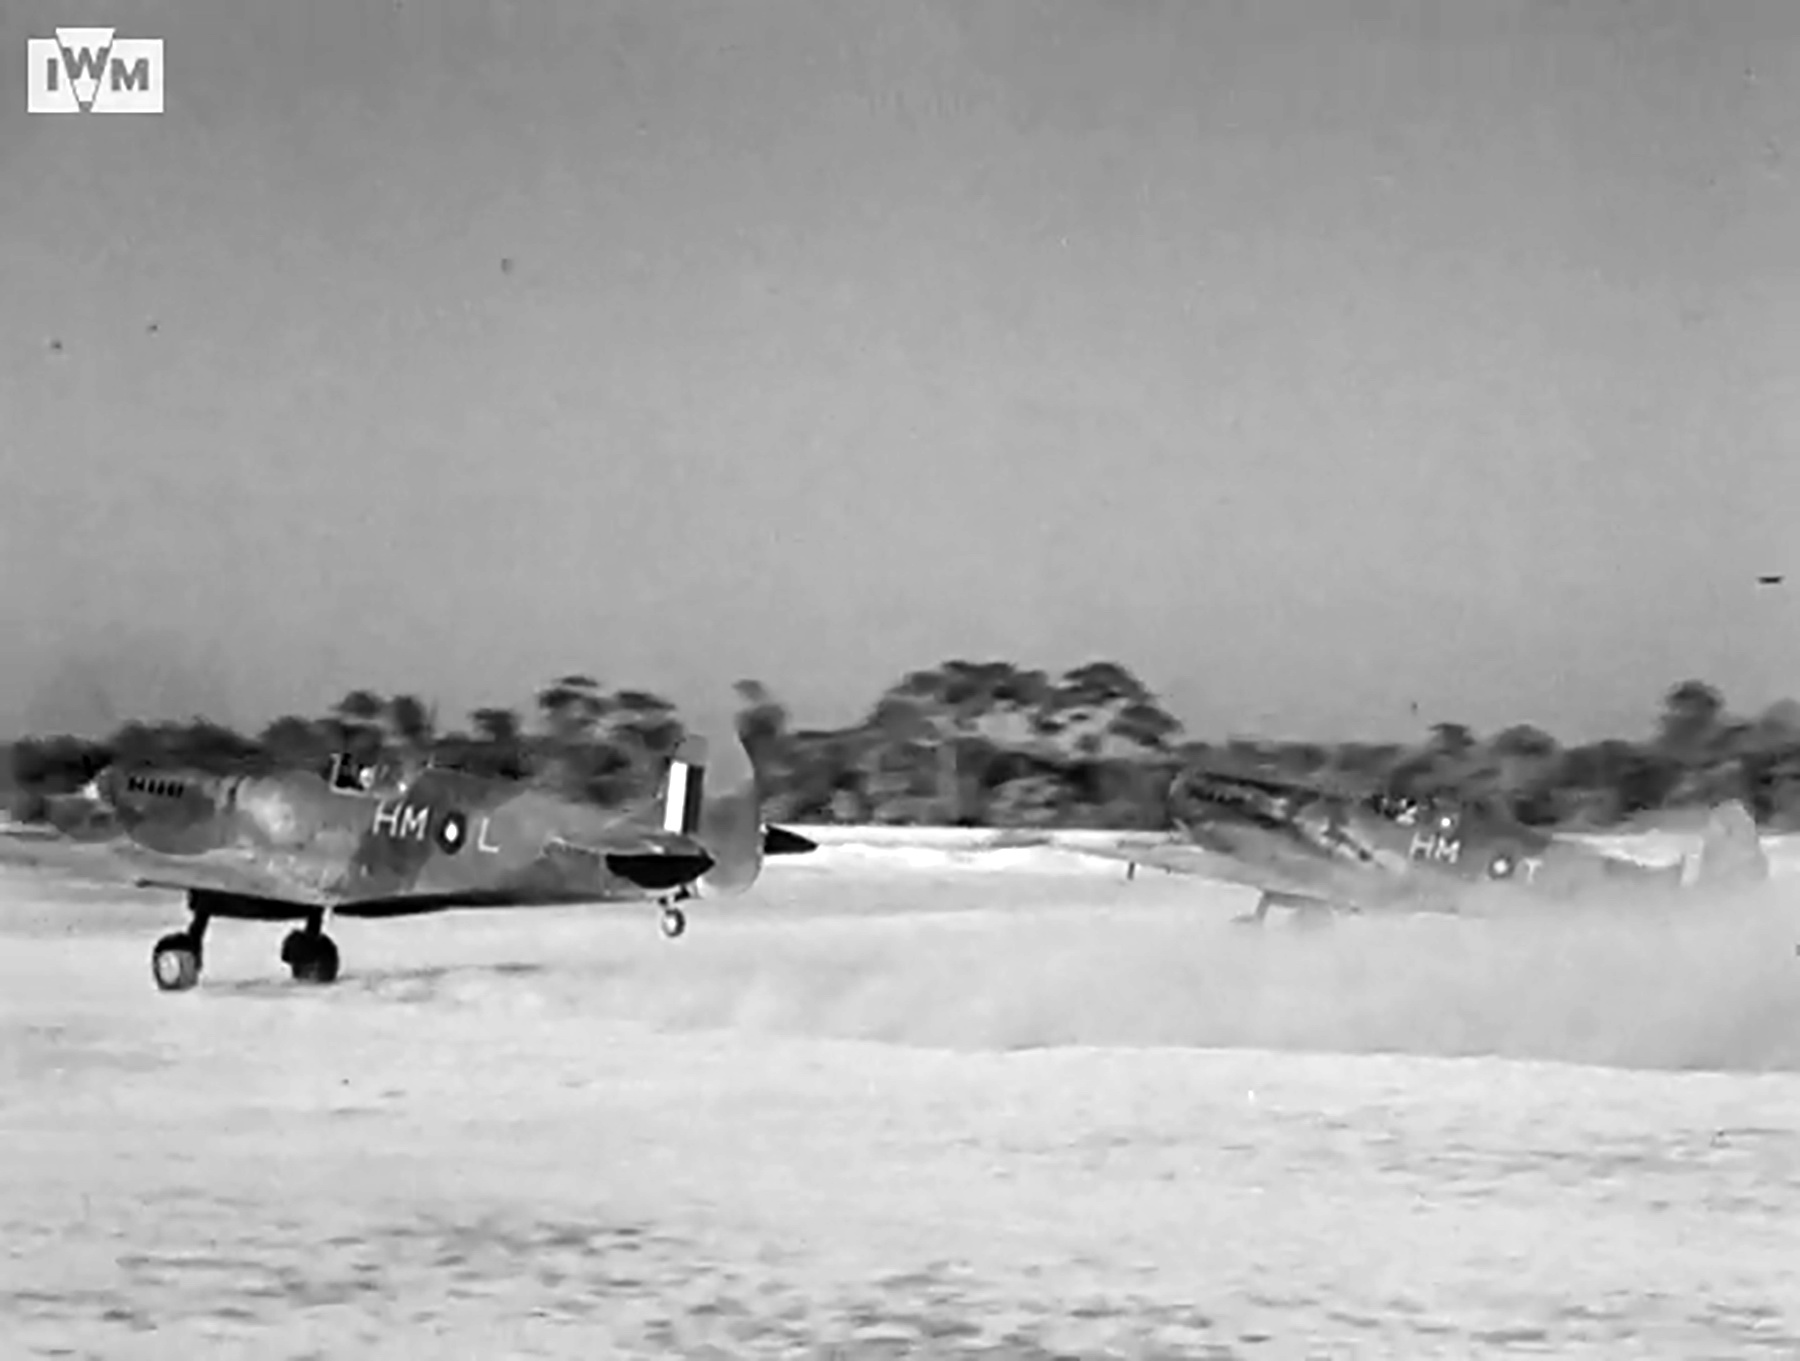 Spitfire VIII RAF 136Sqn HML and HMT taking off from Rumkhapalong operating over Burma CBI 1944 IWM 01